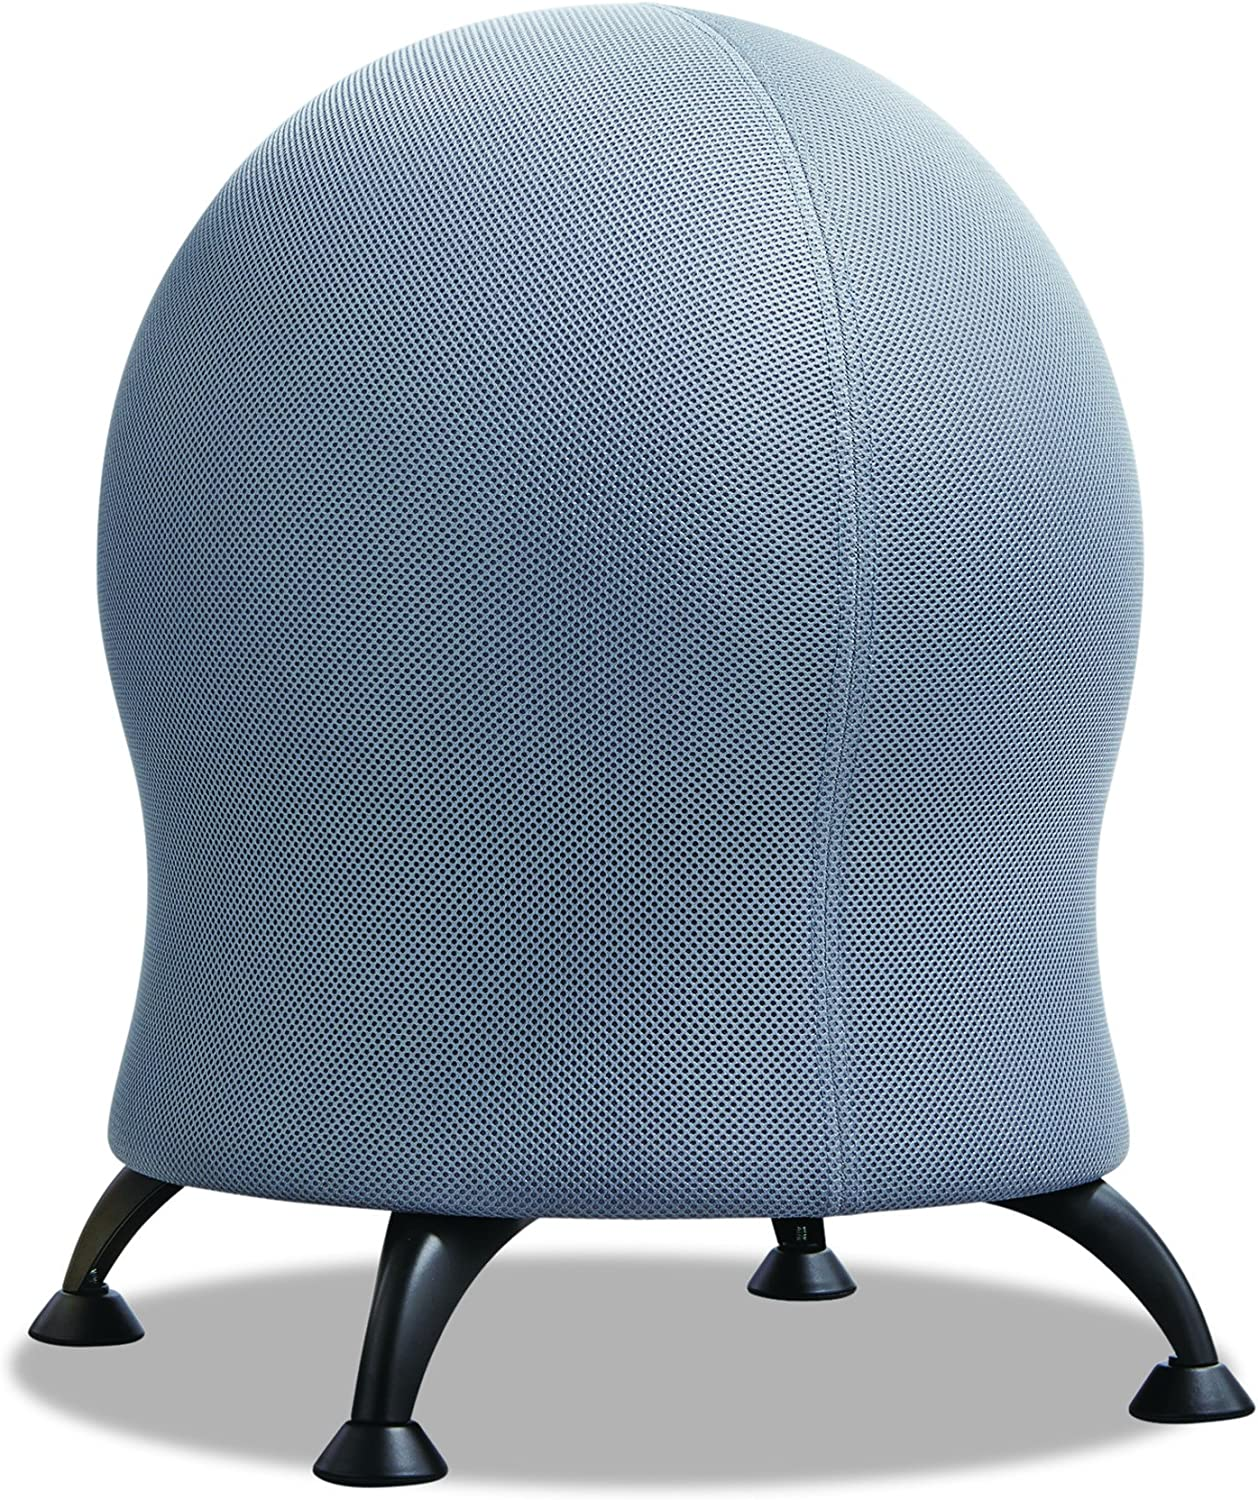 Safco Products 4750GR Zenergy Ball Chair, Gray, Low Profile, Active Seating